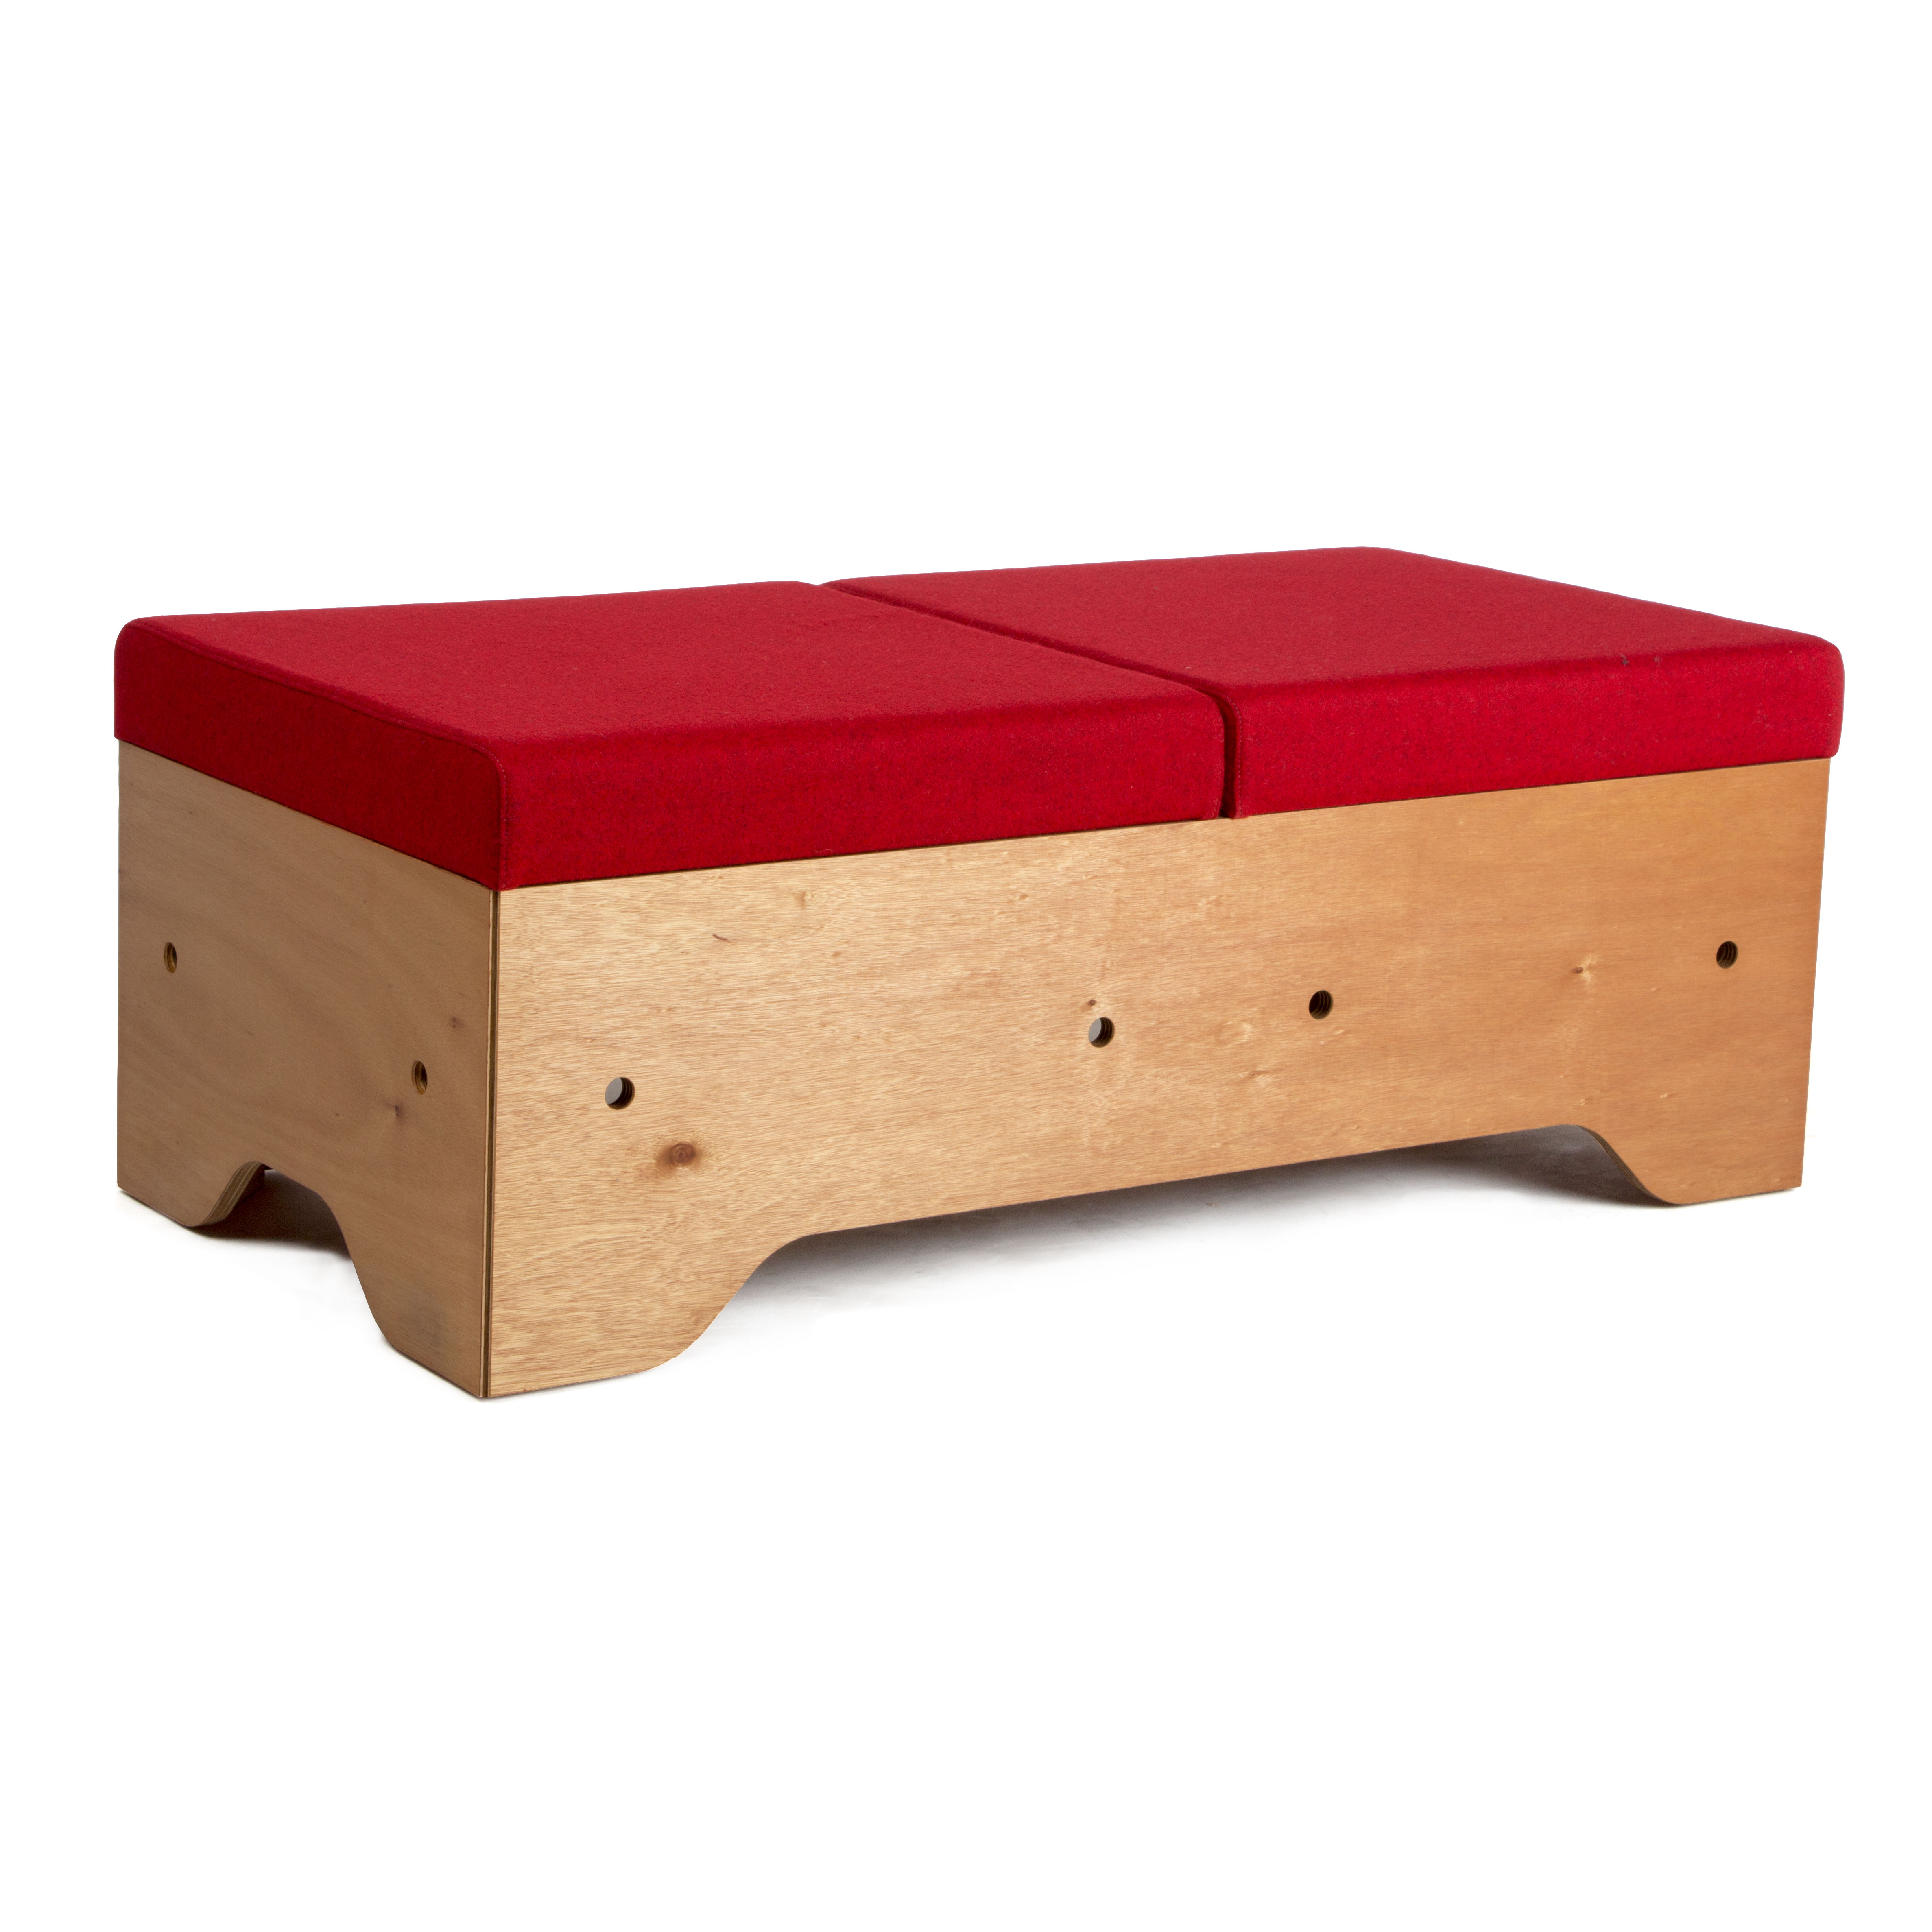 boltwood_bench_red.jpg